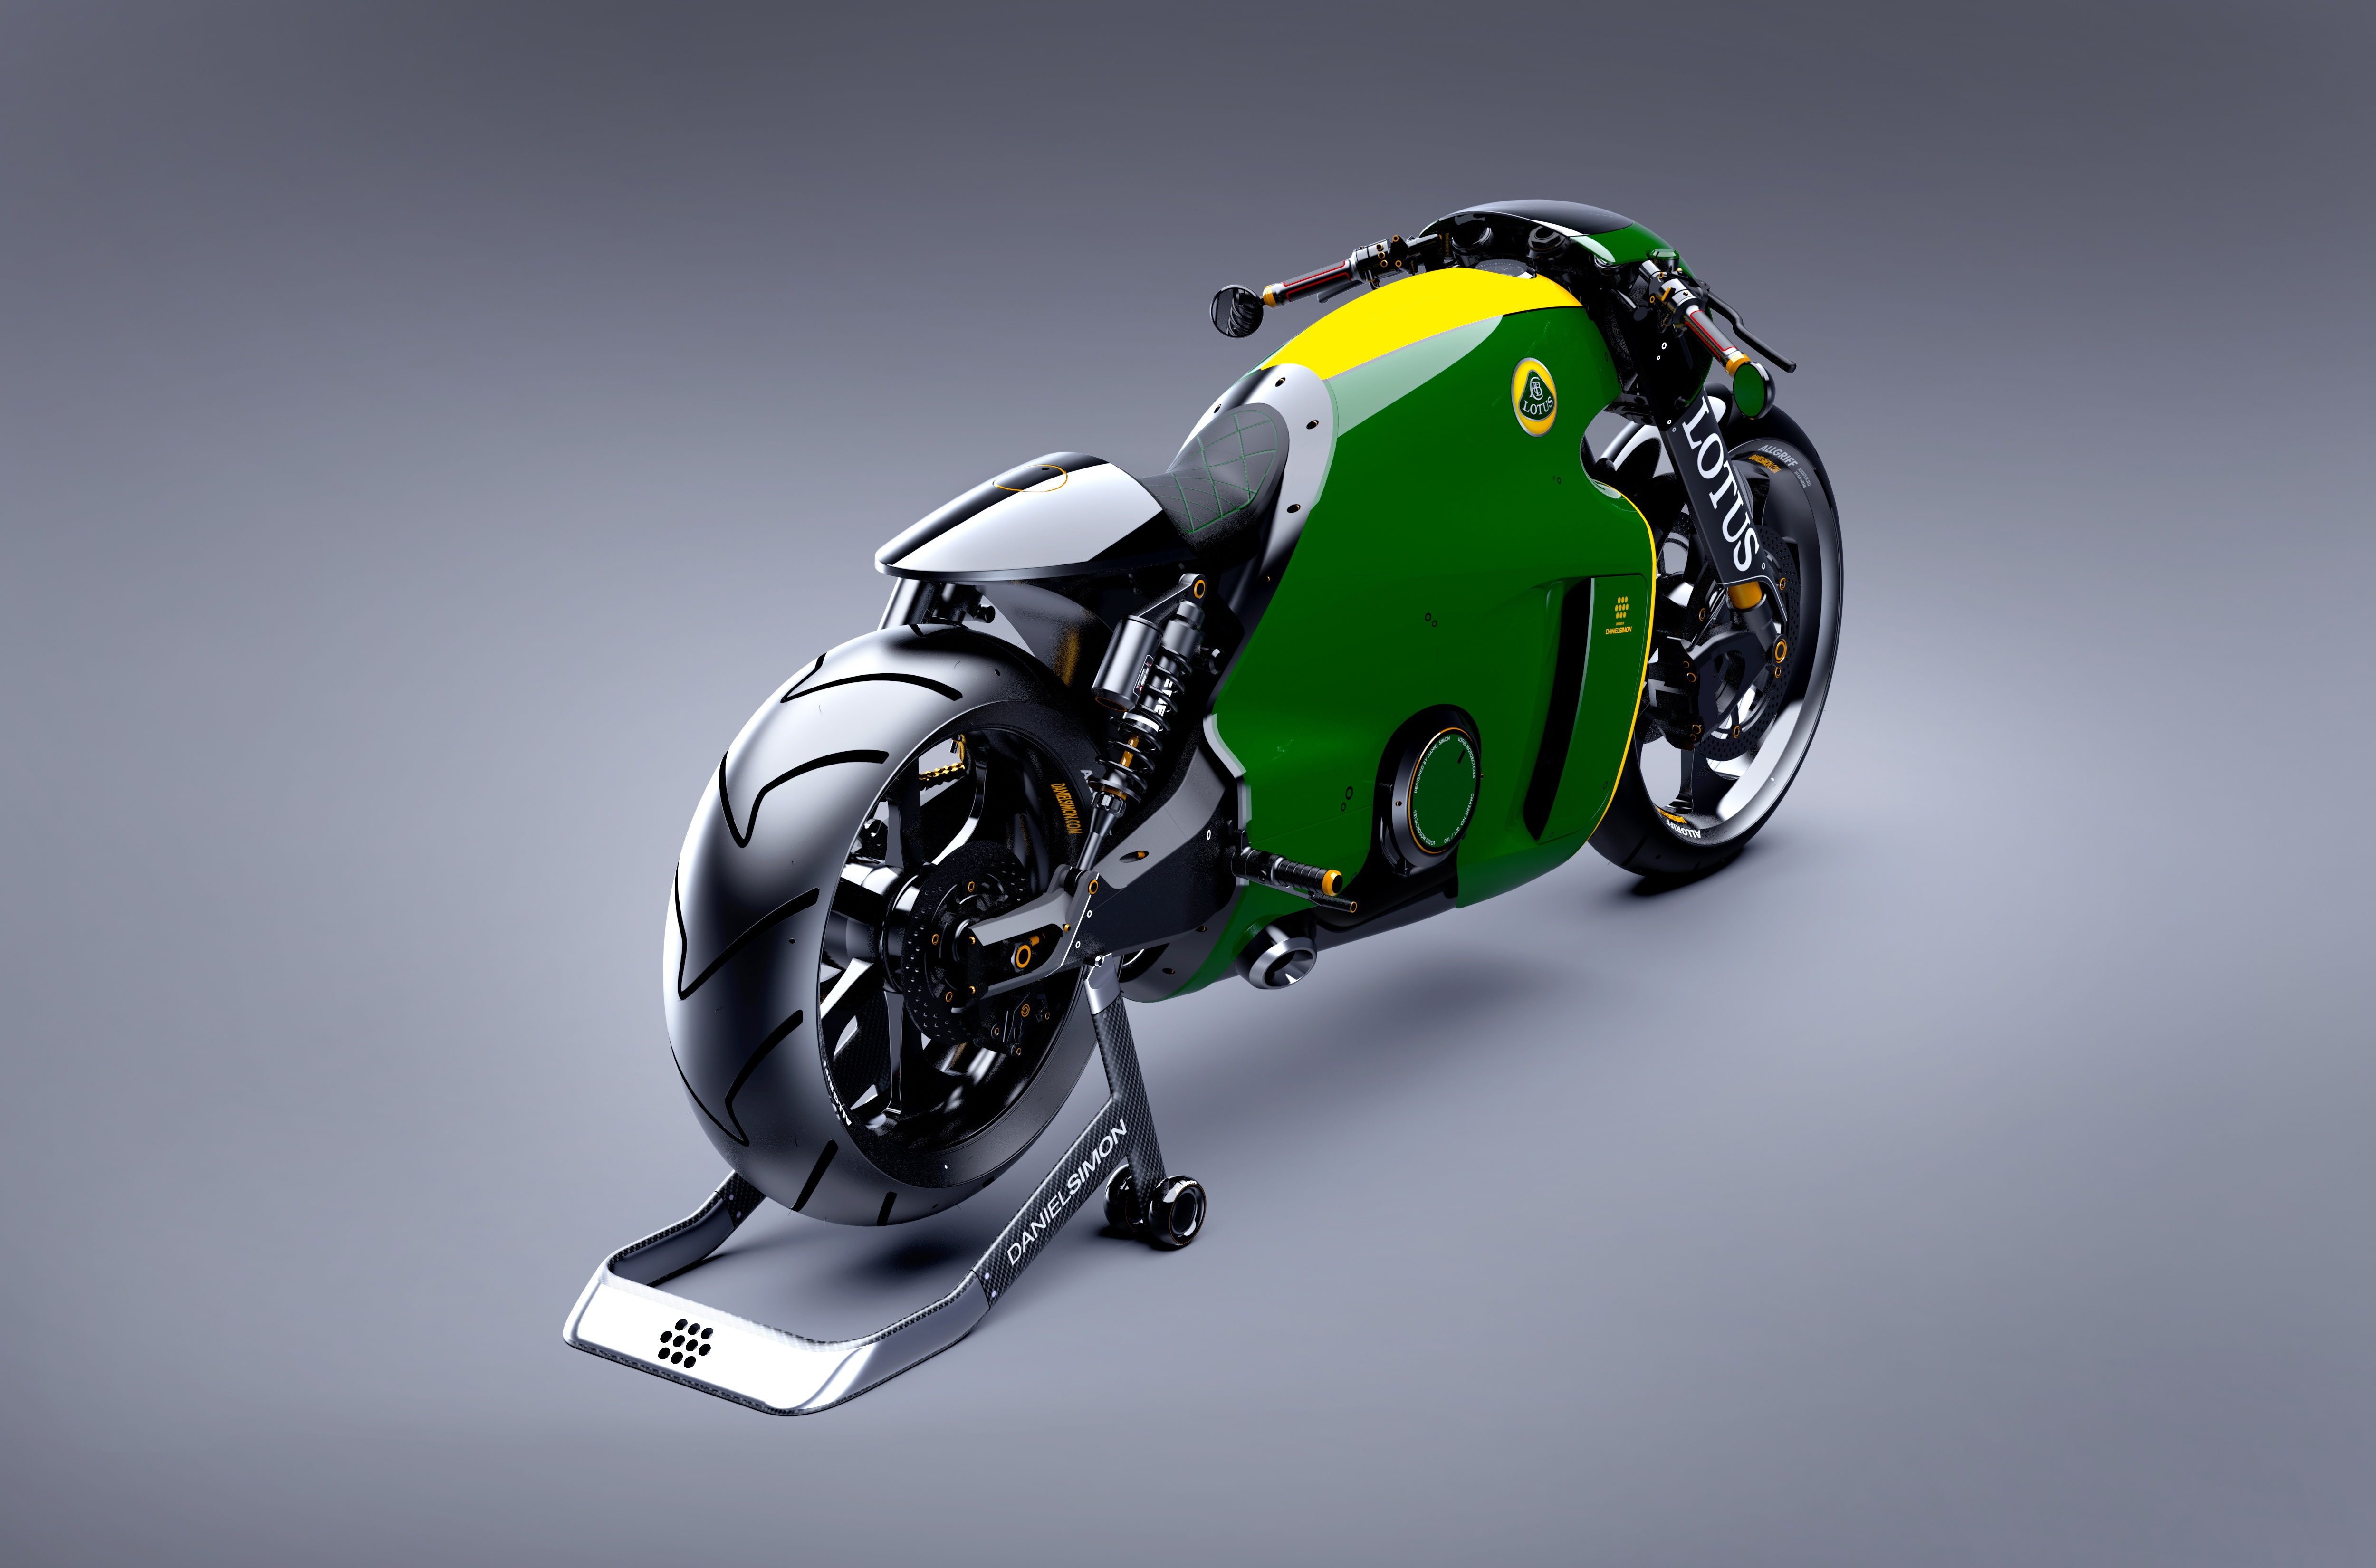 Prototypes like the Lotus C-01 will be fine tuned during test.